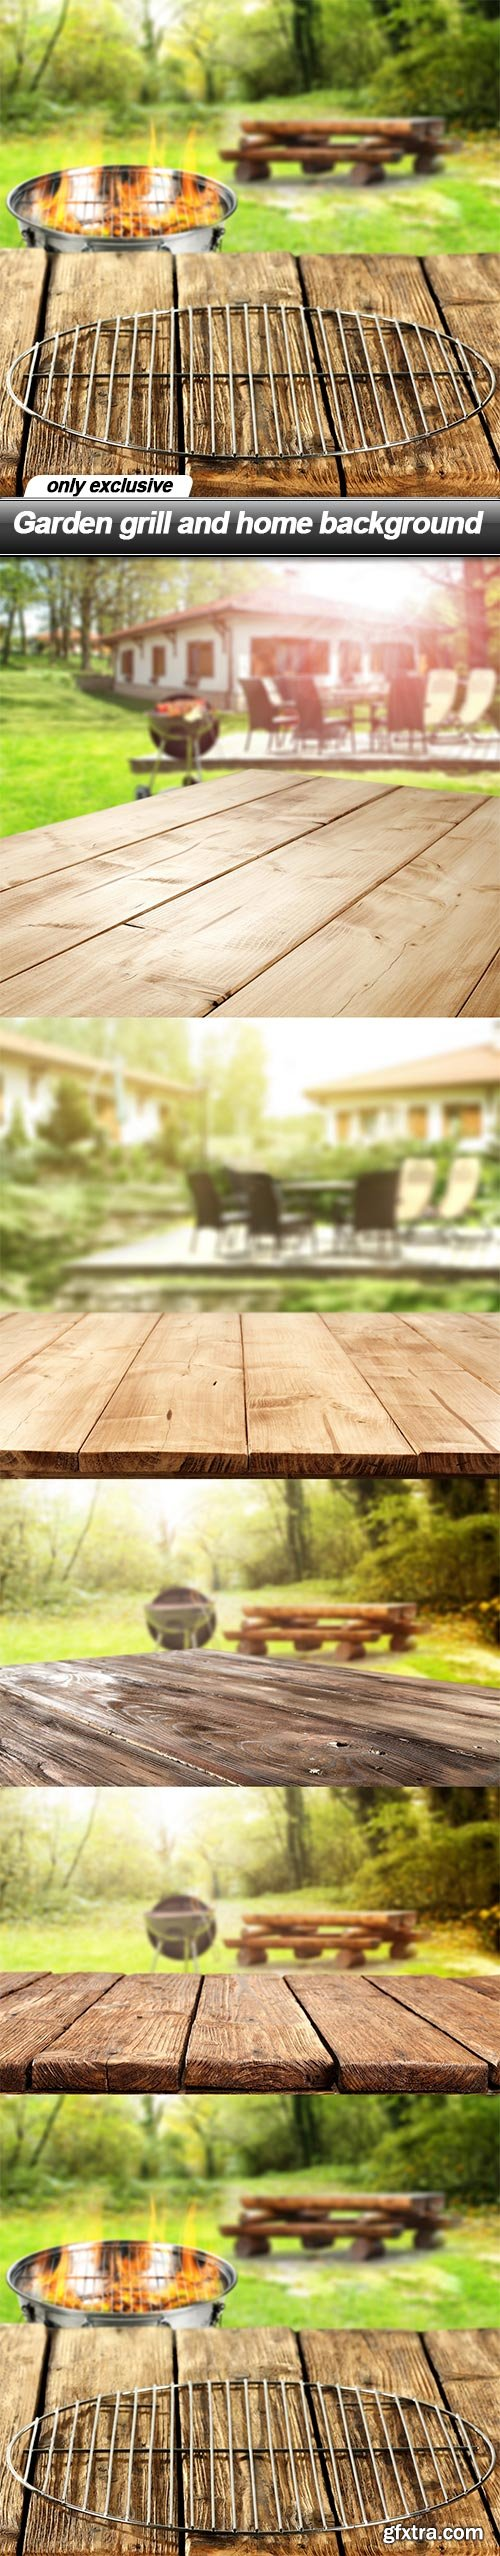 Garden grill and home background - 5 UHQ JPEG